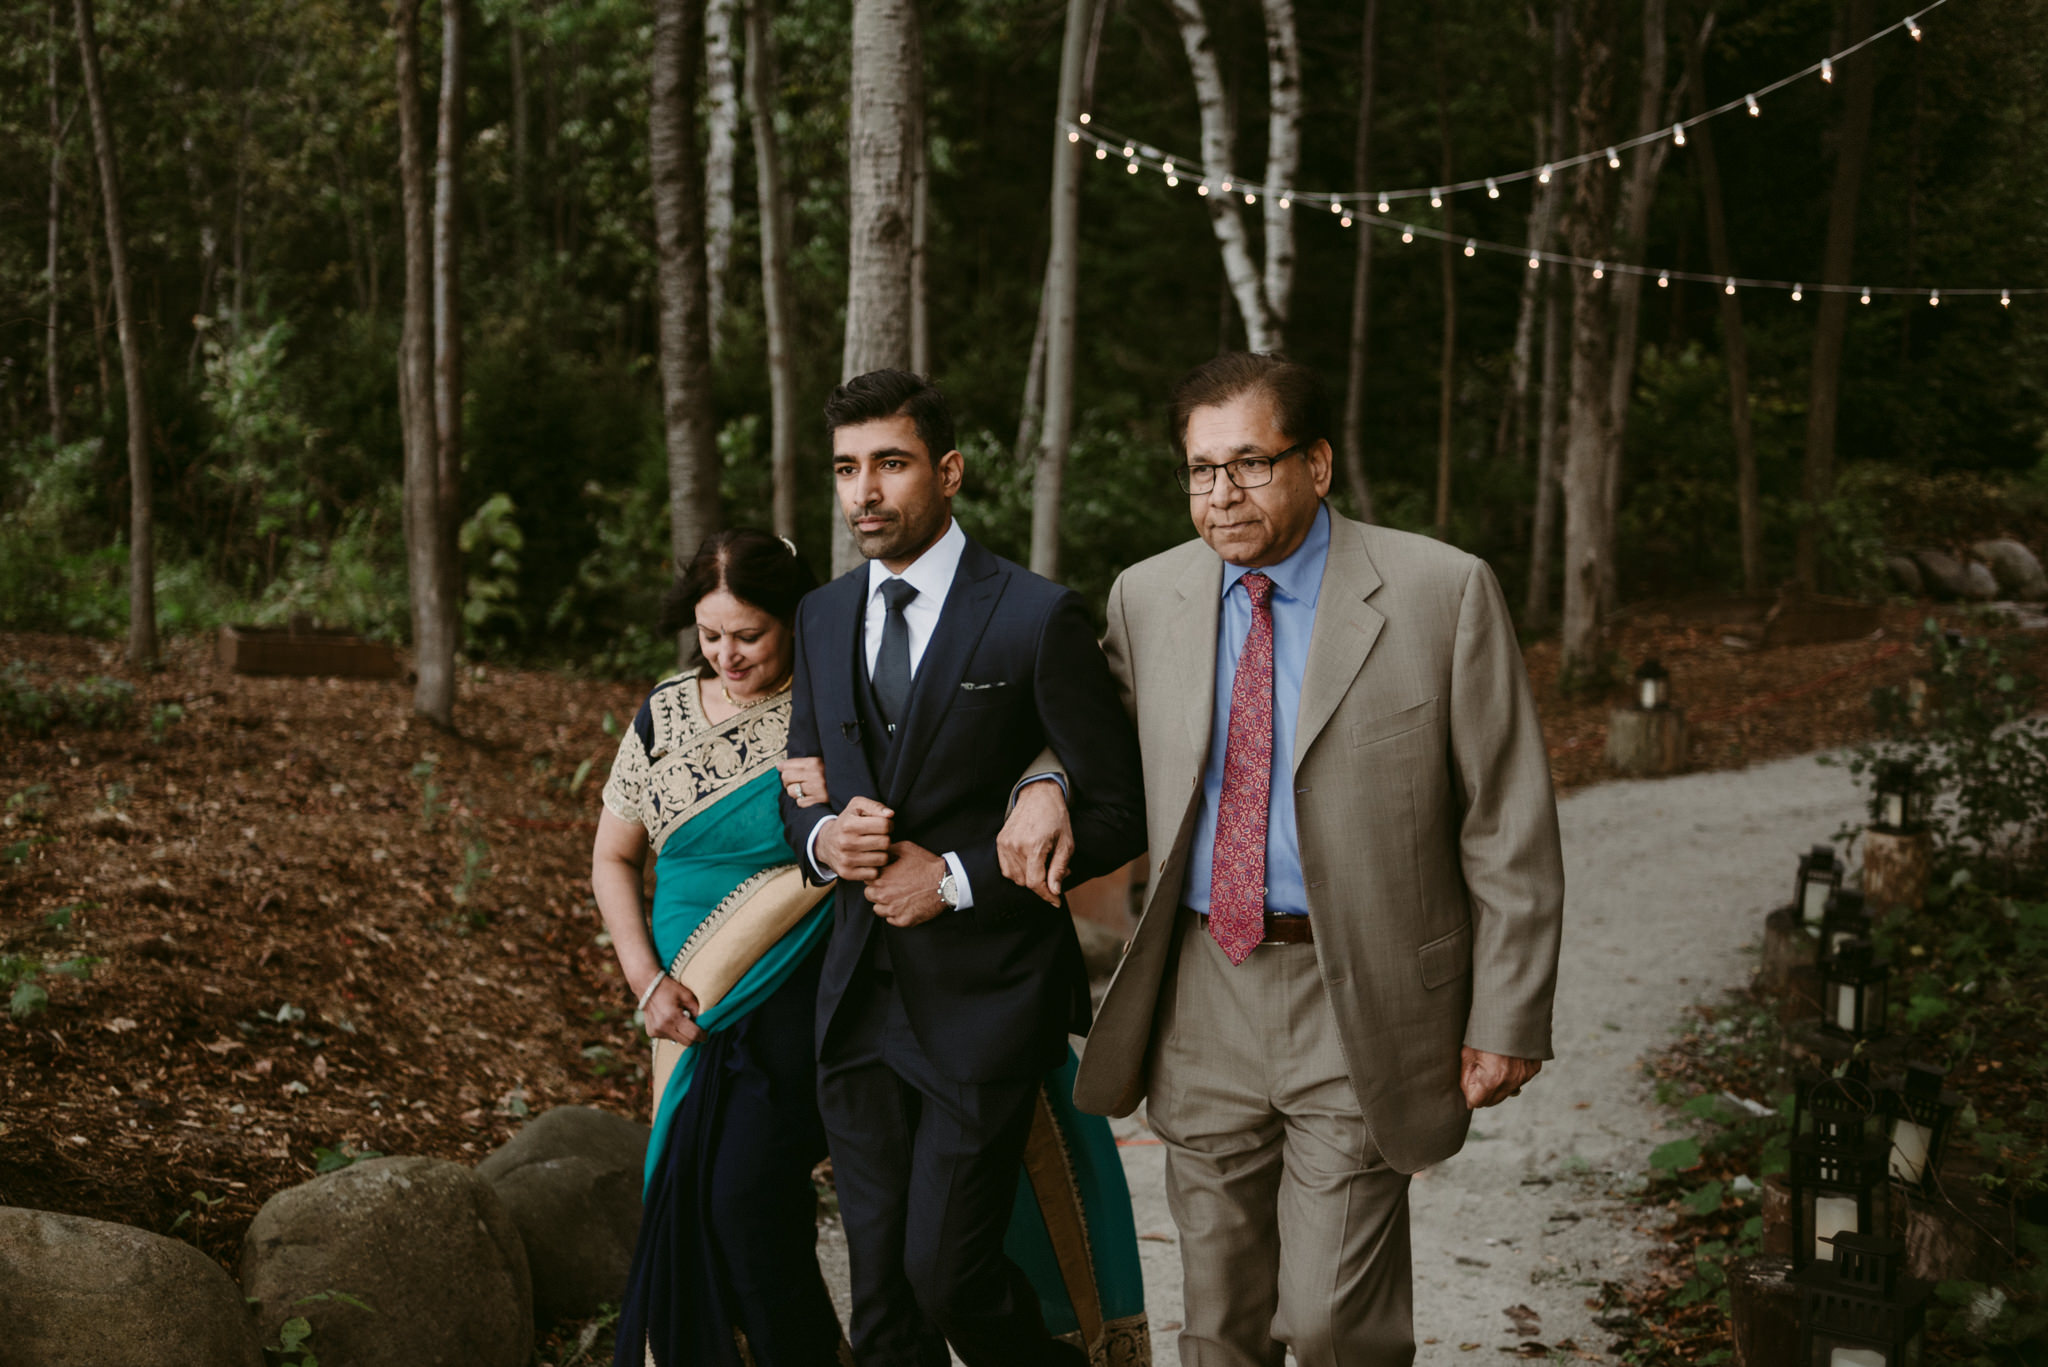 groom walking parents down aisle